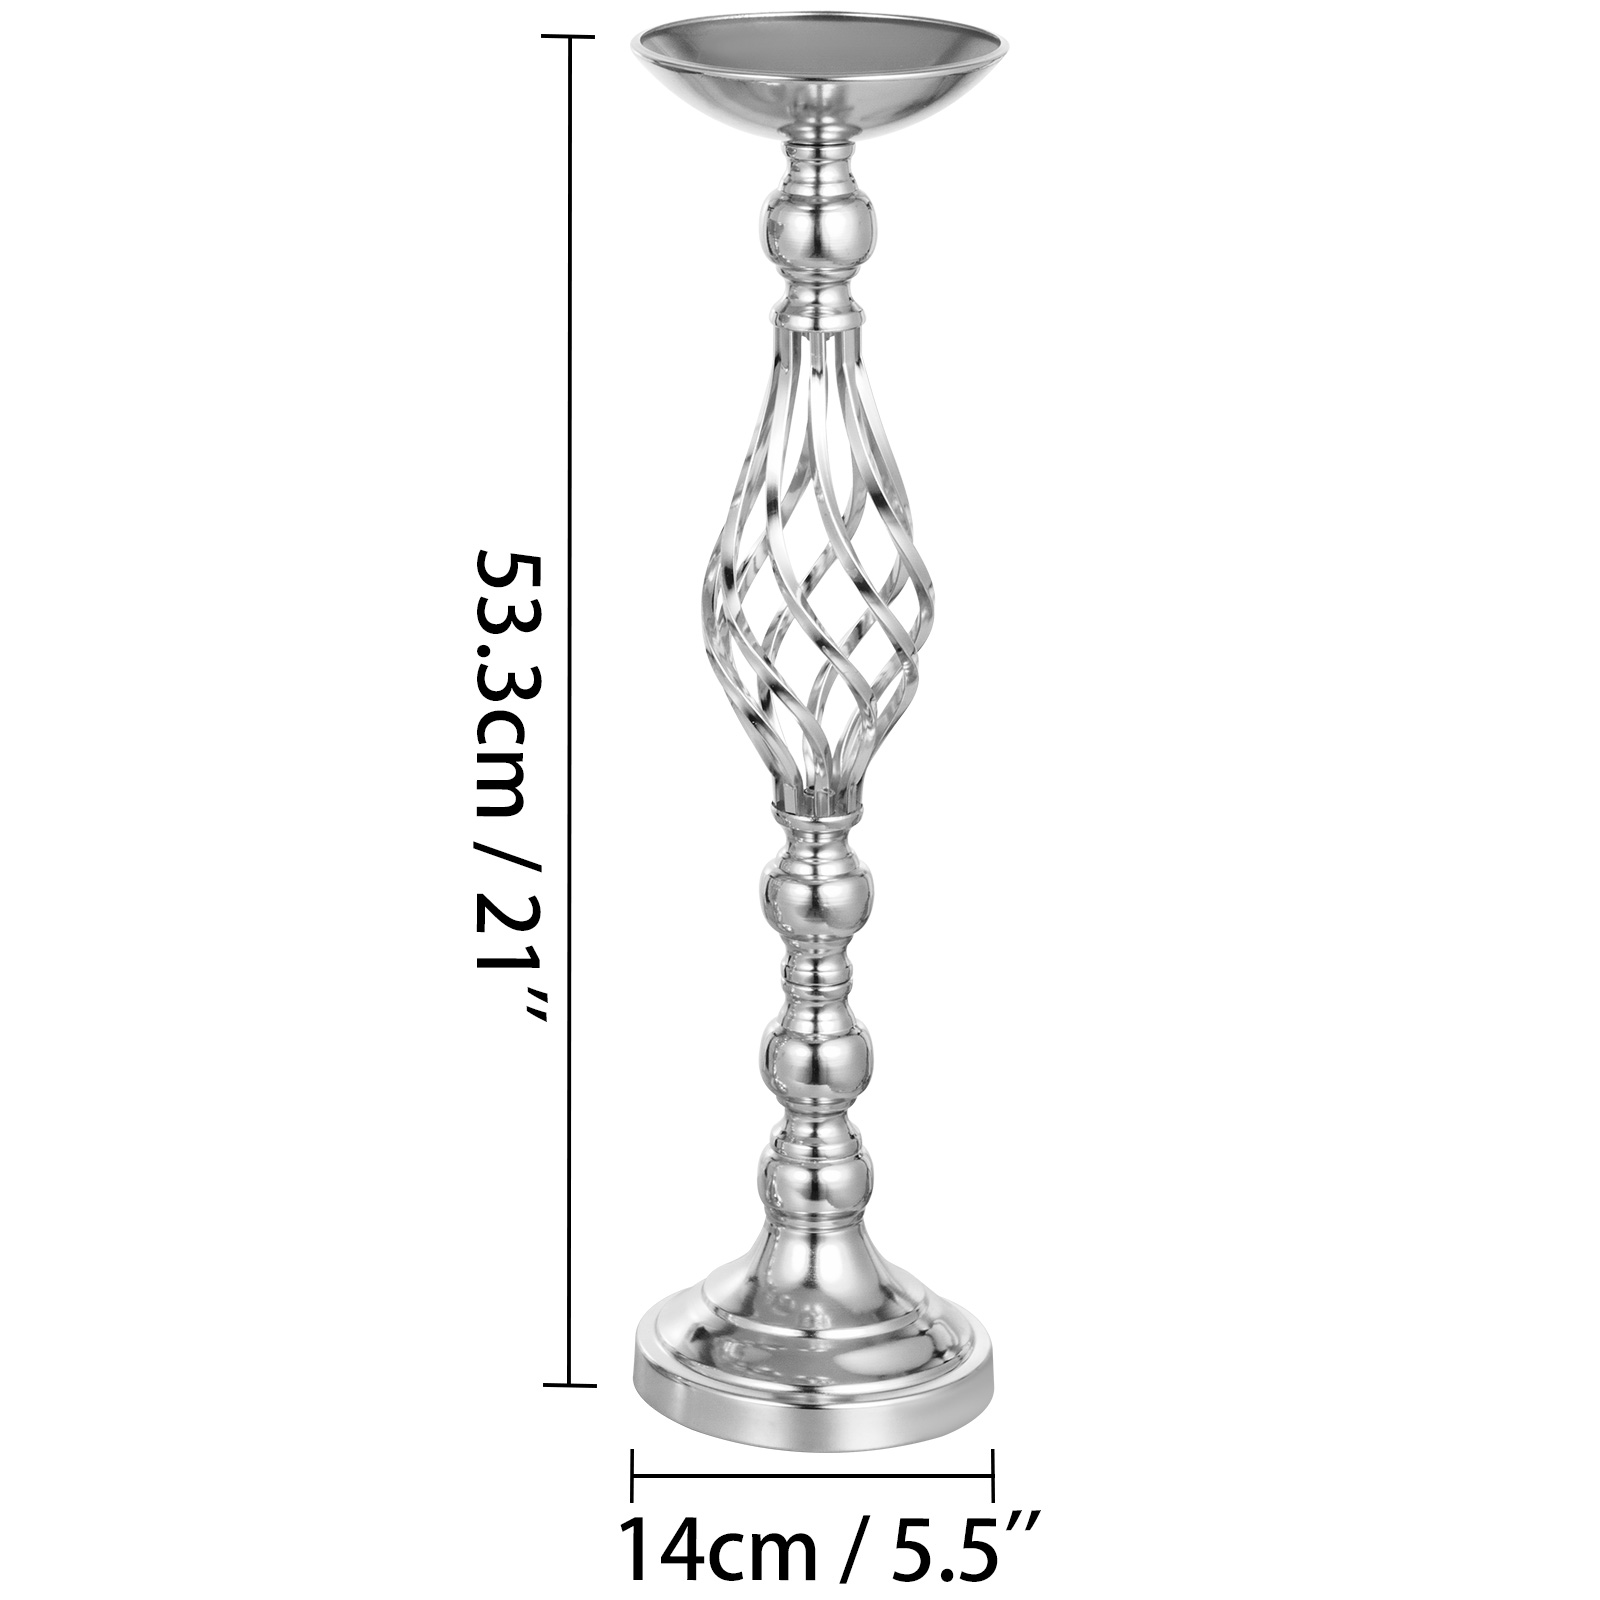 Flower-Rack-for-Wedding-Metal-Candle-Stand-4-11pcs-Centerpiece-Flower-Vase thumbnail 20